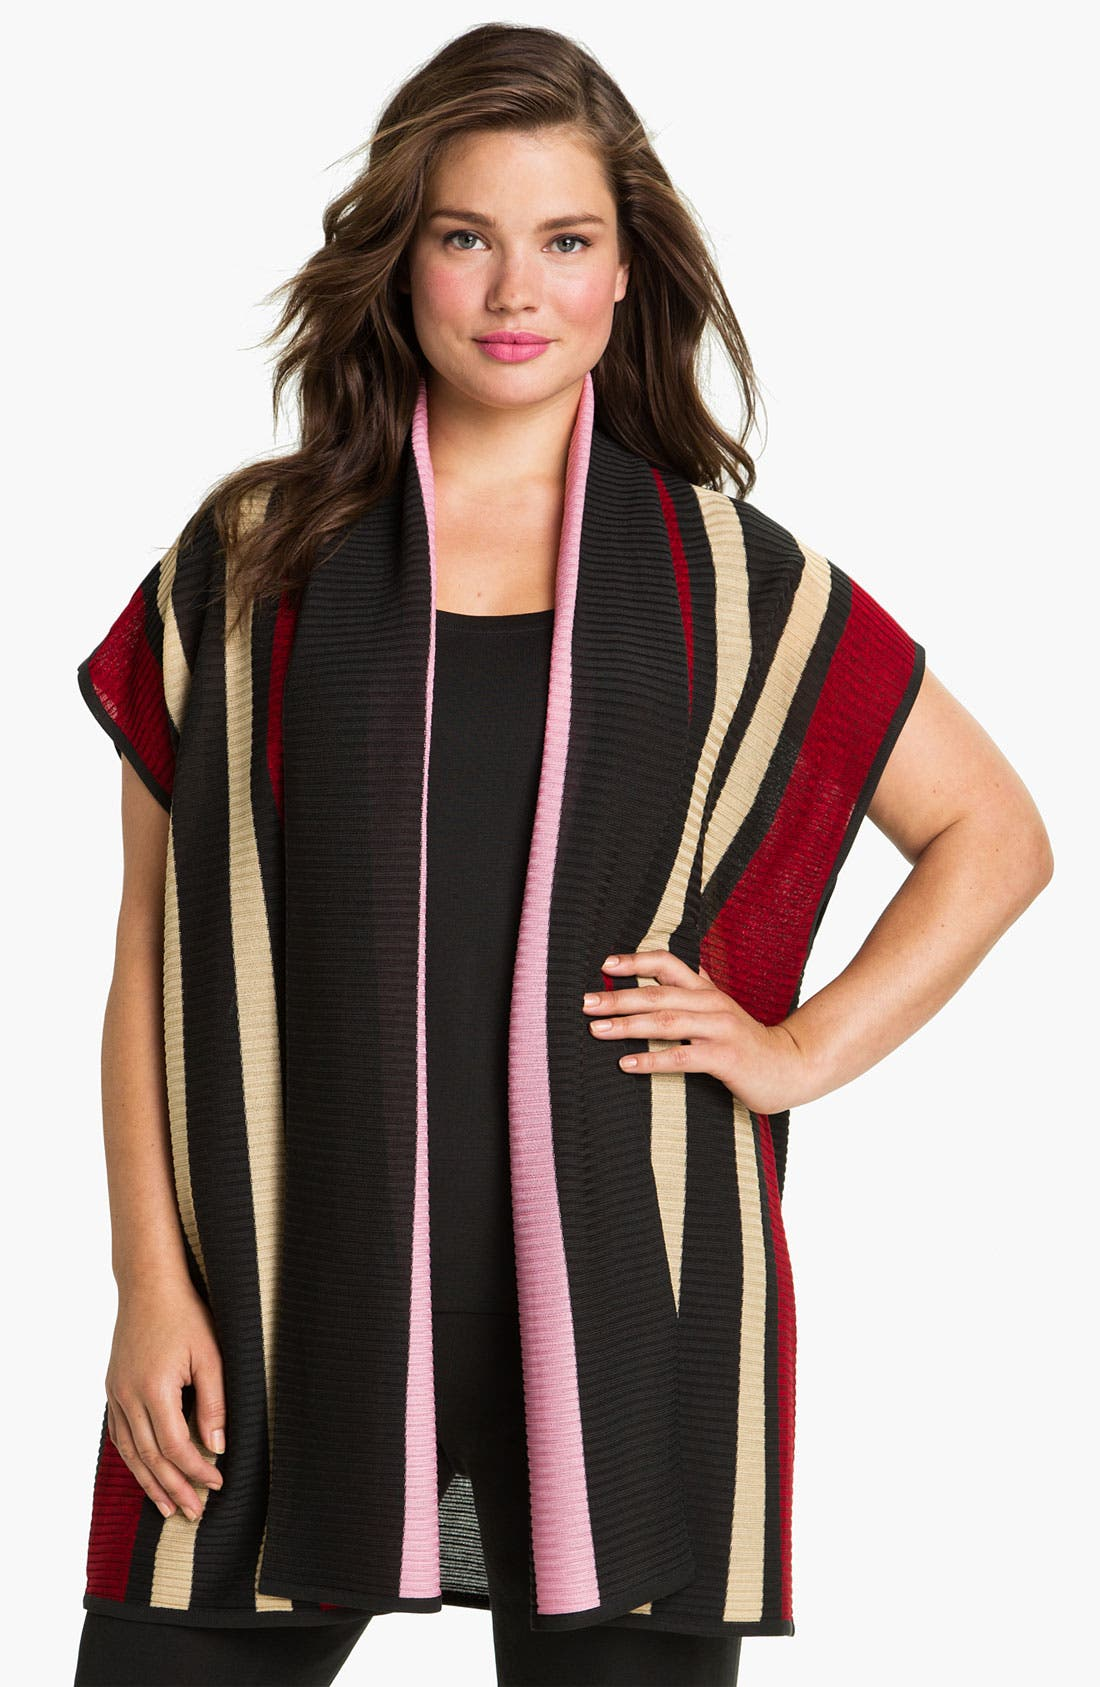 Alternate Image 1 Selected - Exclusively Misook Stripe Ribbed Sweater Vest (Plus)